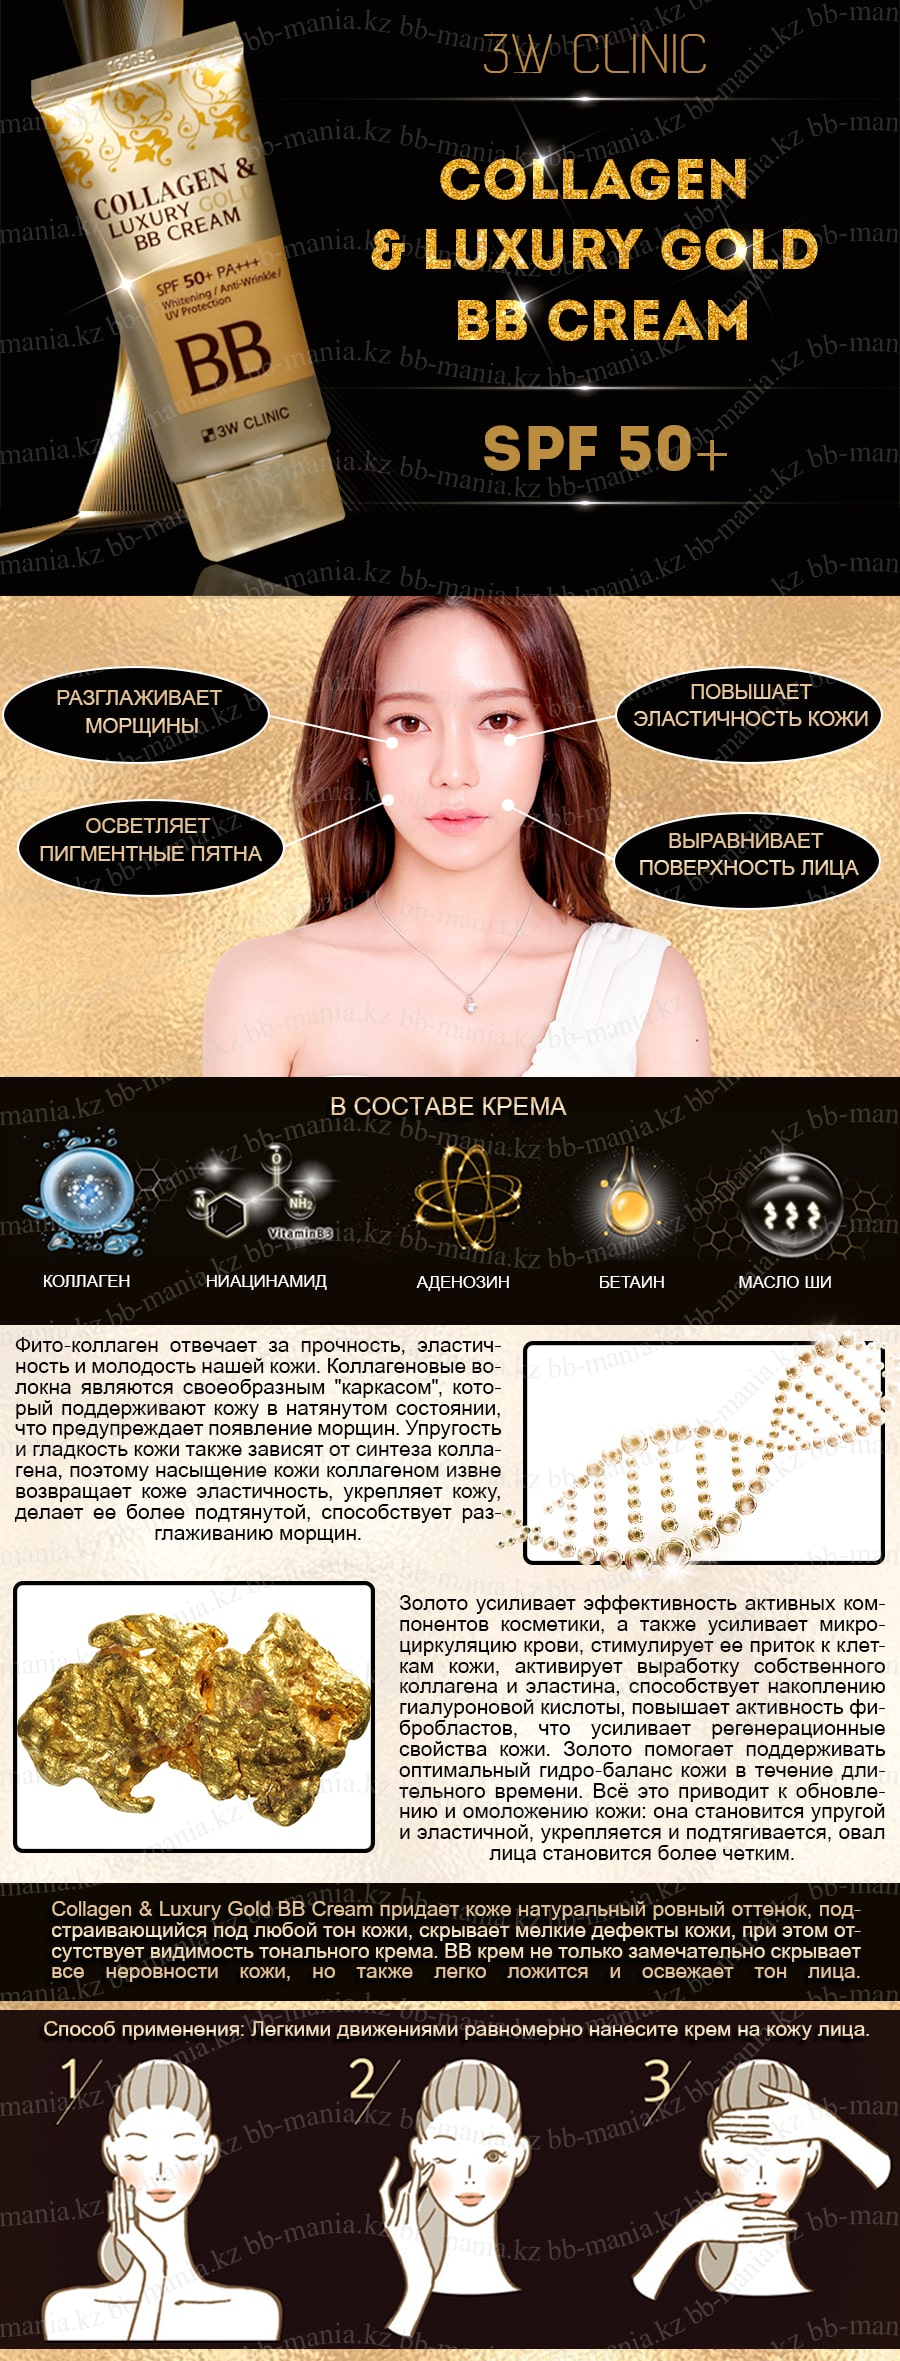 Collagen-&-Luxury-Gold-BB-Cream-[3W-Clinic]-min